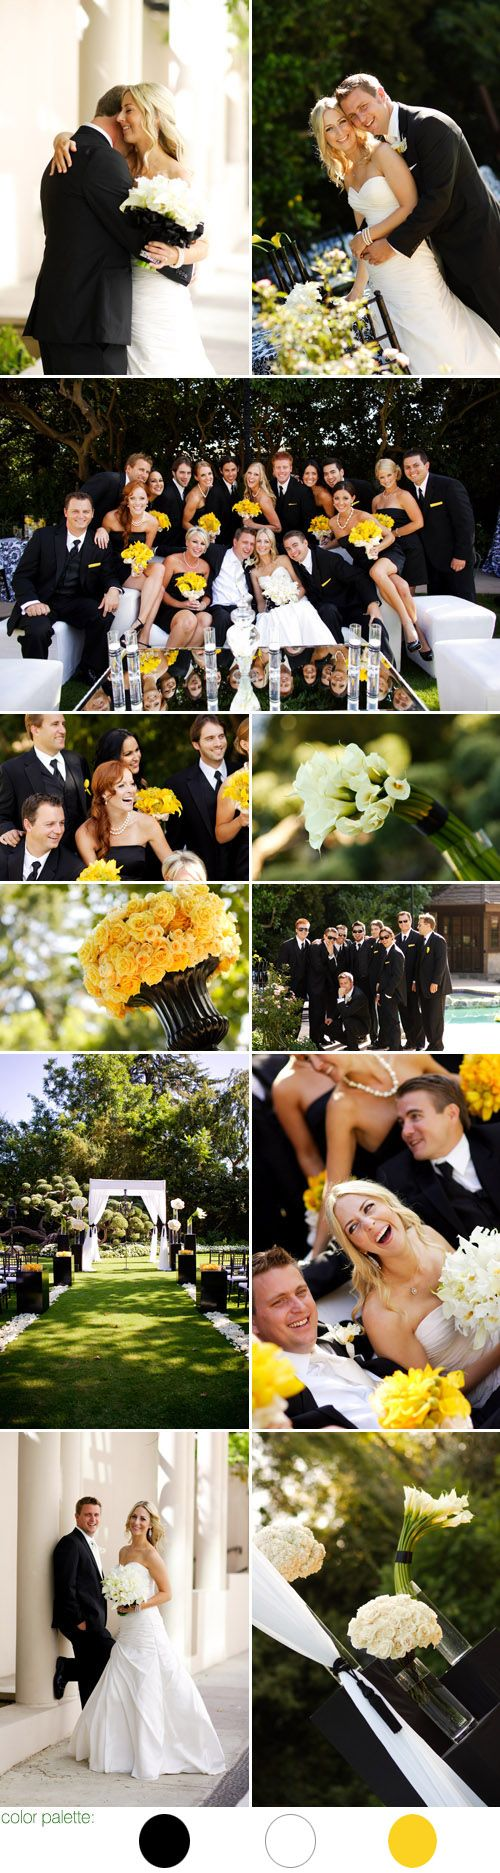 whimsical yellow, black and white wedding produced and designed by Kristin Banta Events, photos by Memories by Michael